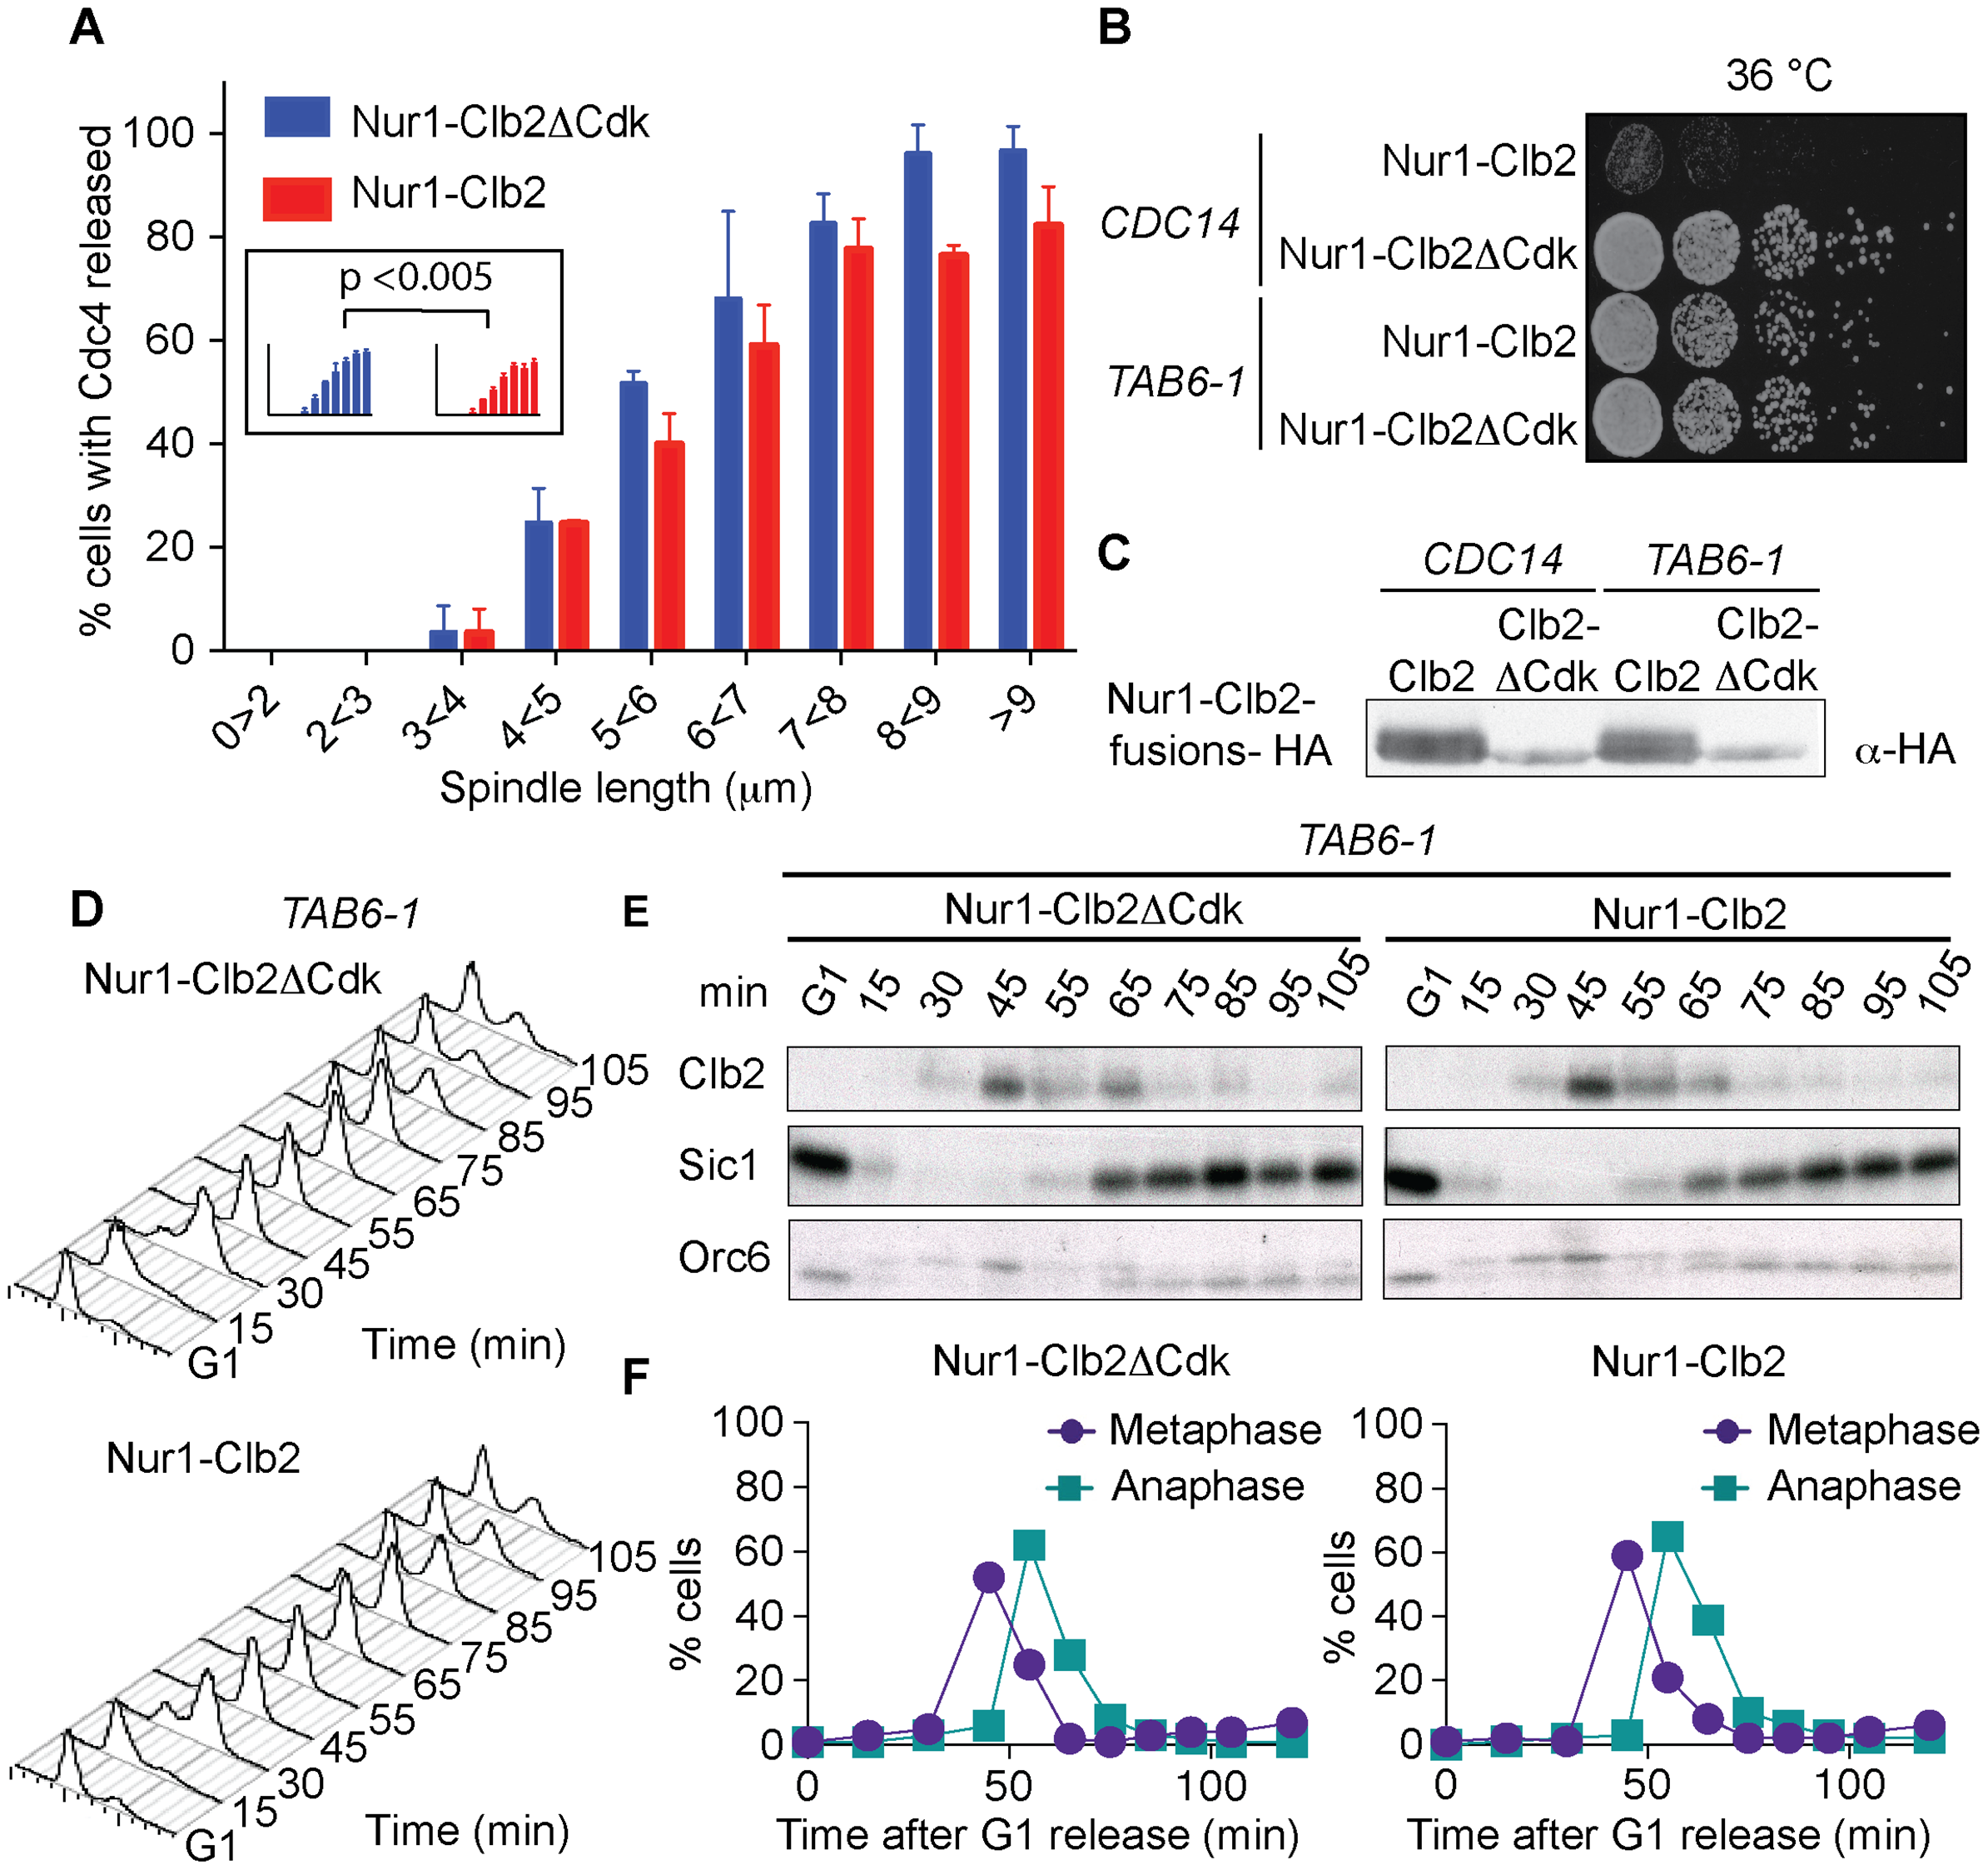 Nur1-Clb2 delays Cdc14 release.